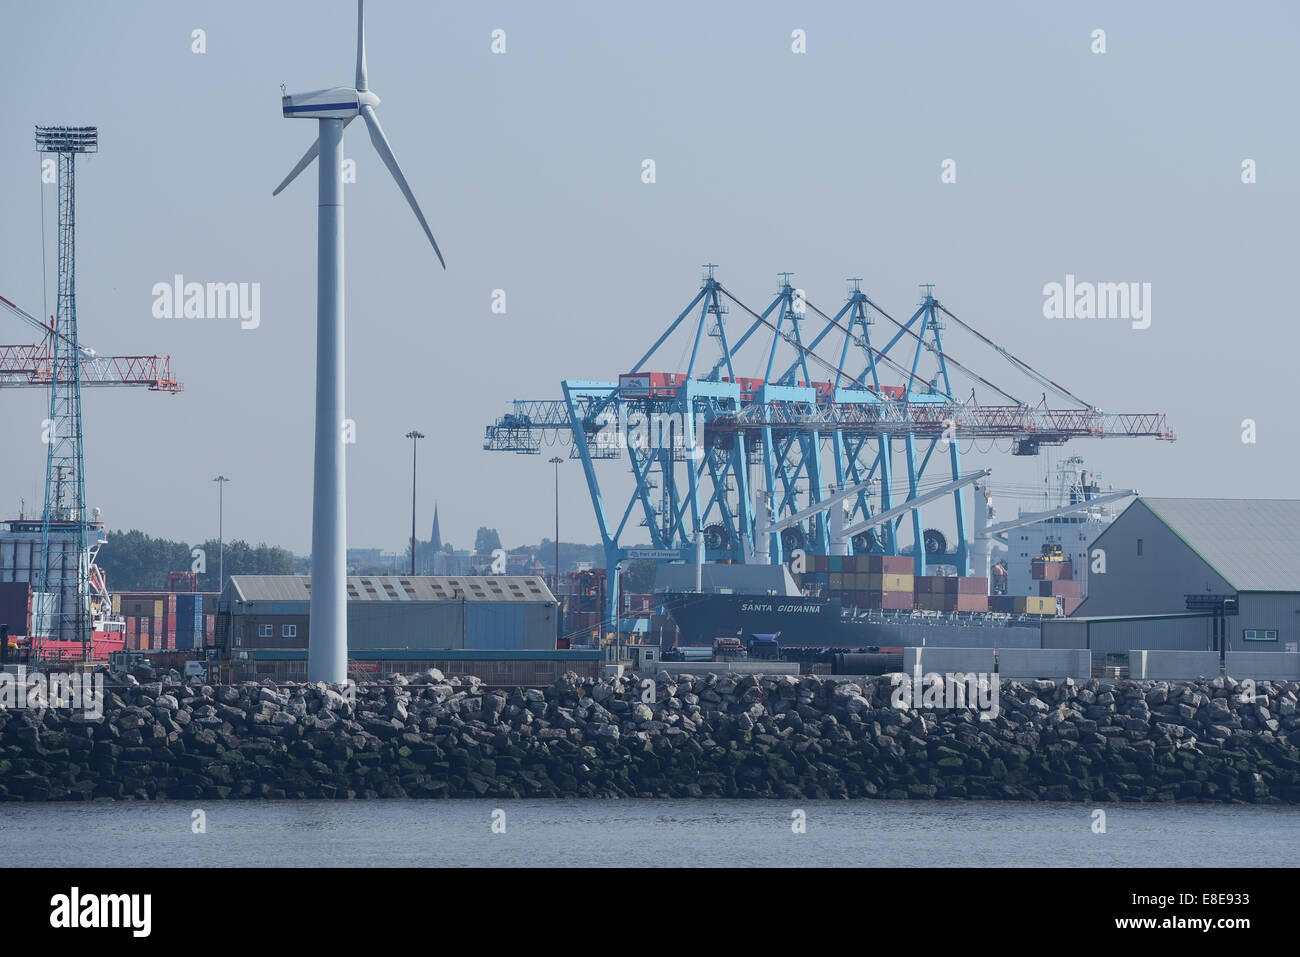 Gantry cranes working over a container ship at Liverpool docks UK - Stock Image